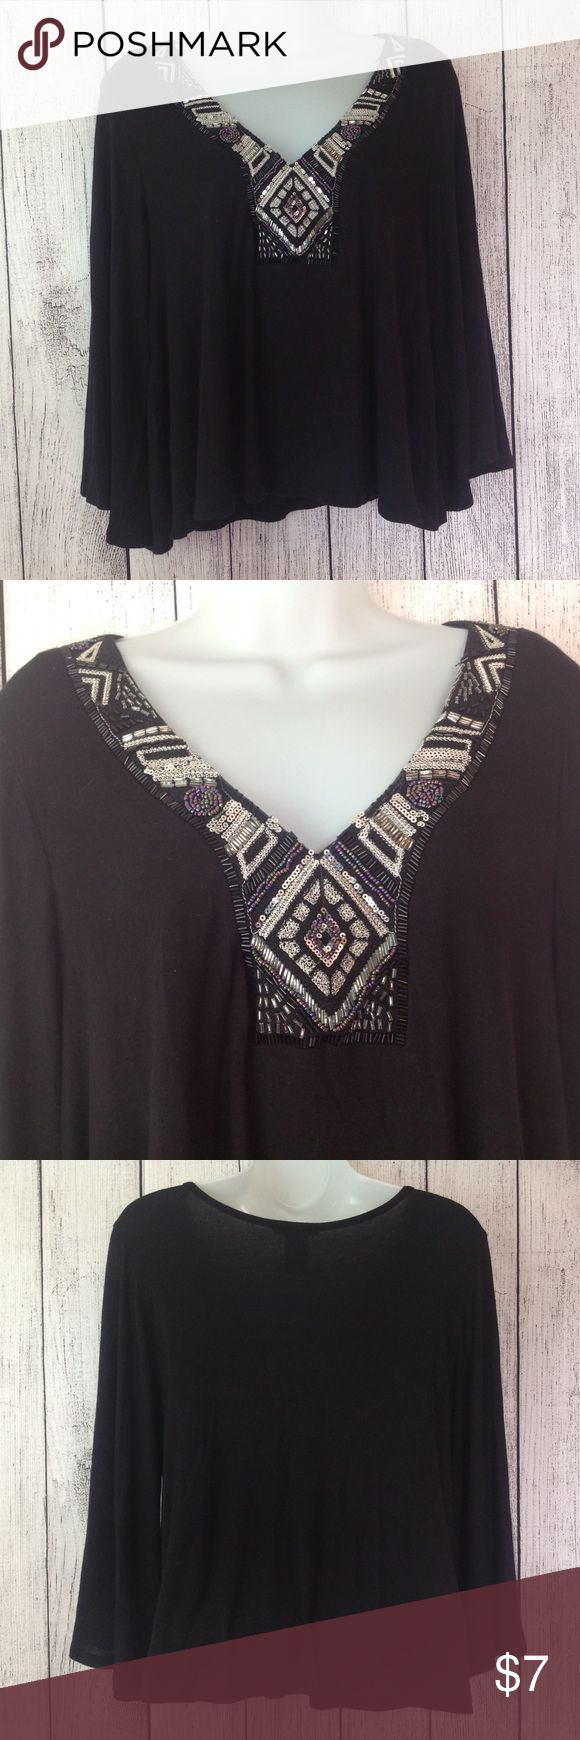 """Black Beaded Embellished Boho style Blouse Maker: Charlotte Russe ♥ Material: 95% Rayon - 5% Spandex ♥ Color: Black ♥ Measured Size: Pit to pit- 21"""" Pit to cuff- 12"""" Shoulder to waist- 19"""" ♥ Tag Size:  Large ♥ Actual Size: Large PLEASE CHECK YOUR ACTUAL MEASUREMENTS TO MAKE SURE IT IS THE RIGHT SIZE! THANKS! ♥ Condition: Great Like New Used Condition ♥ Item #: (office use only) A  Follow us on Instagram and facebook for coupon codes!  INSTAGRAM-thehausofvintage1984 Facebook- intergalactic…"""